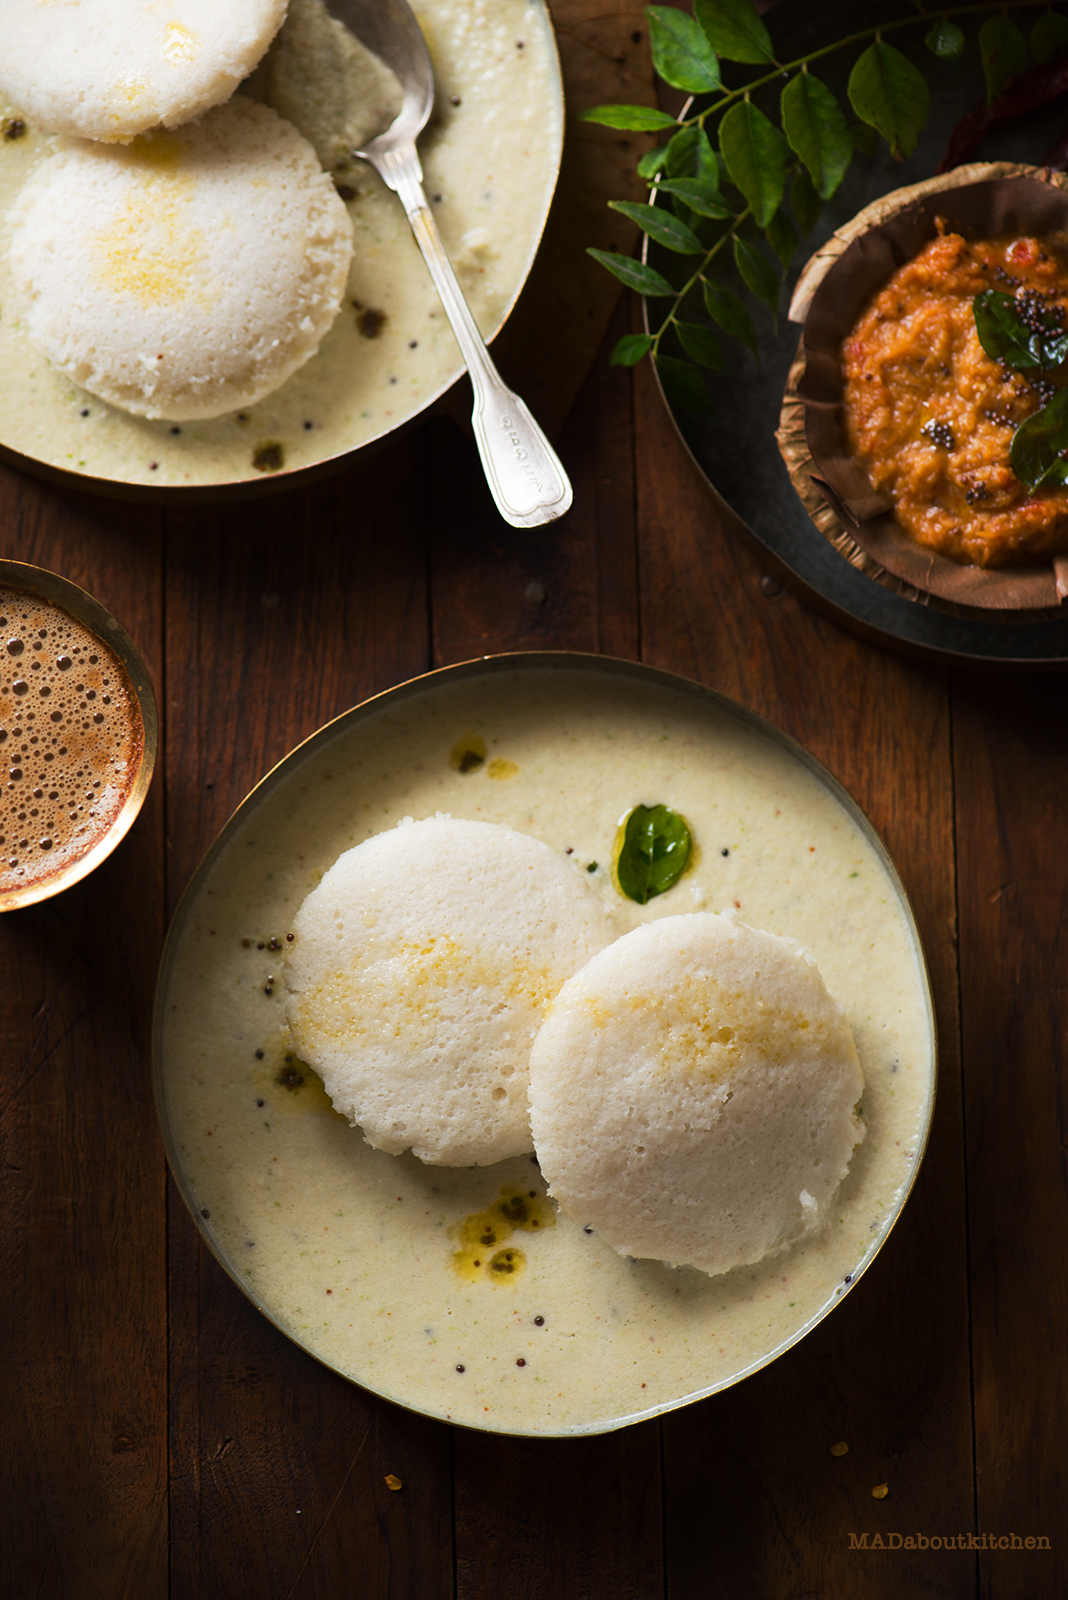 Idli is one of the most famous and most common breakfast dishes in India , specially in South India. Idly is a soft rice dumplings which are steamed and considered very healthy.